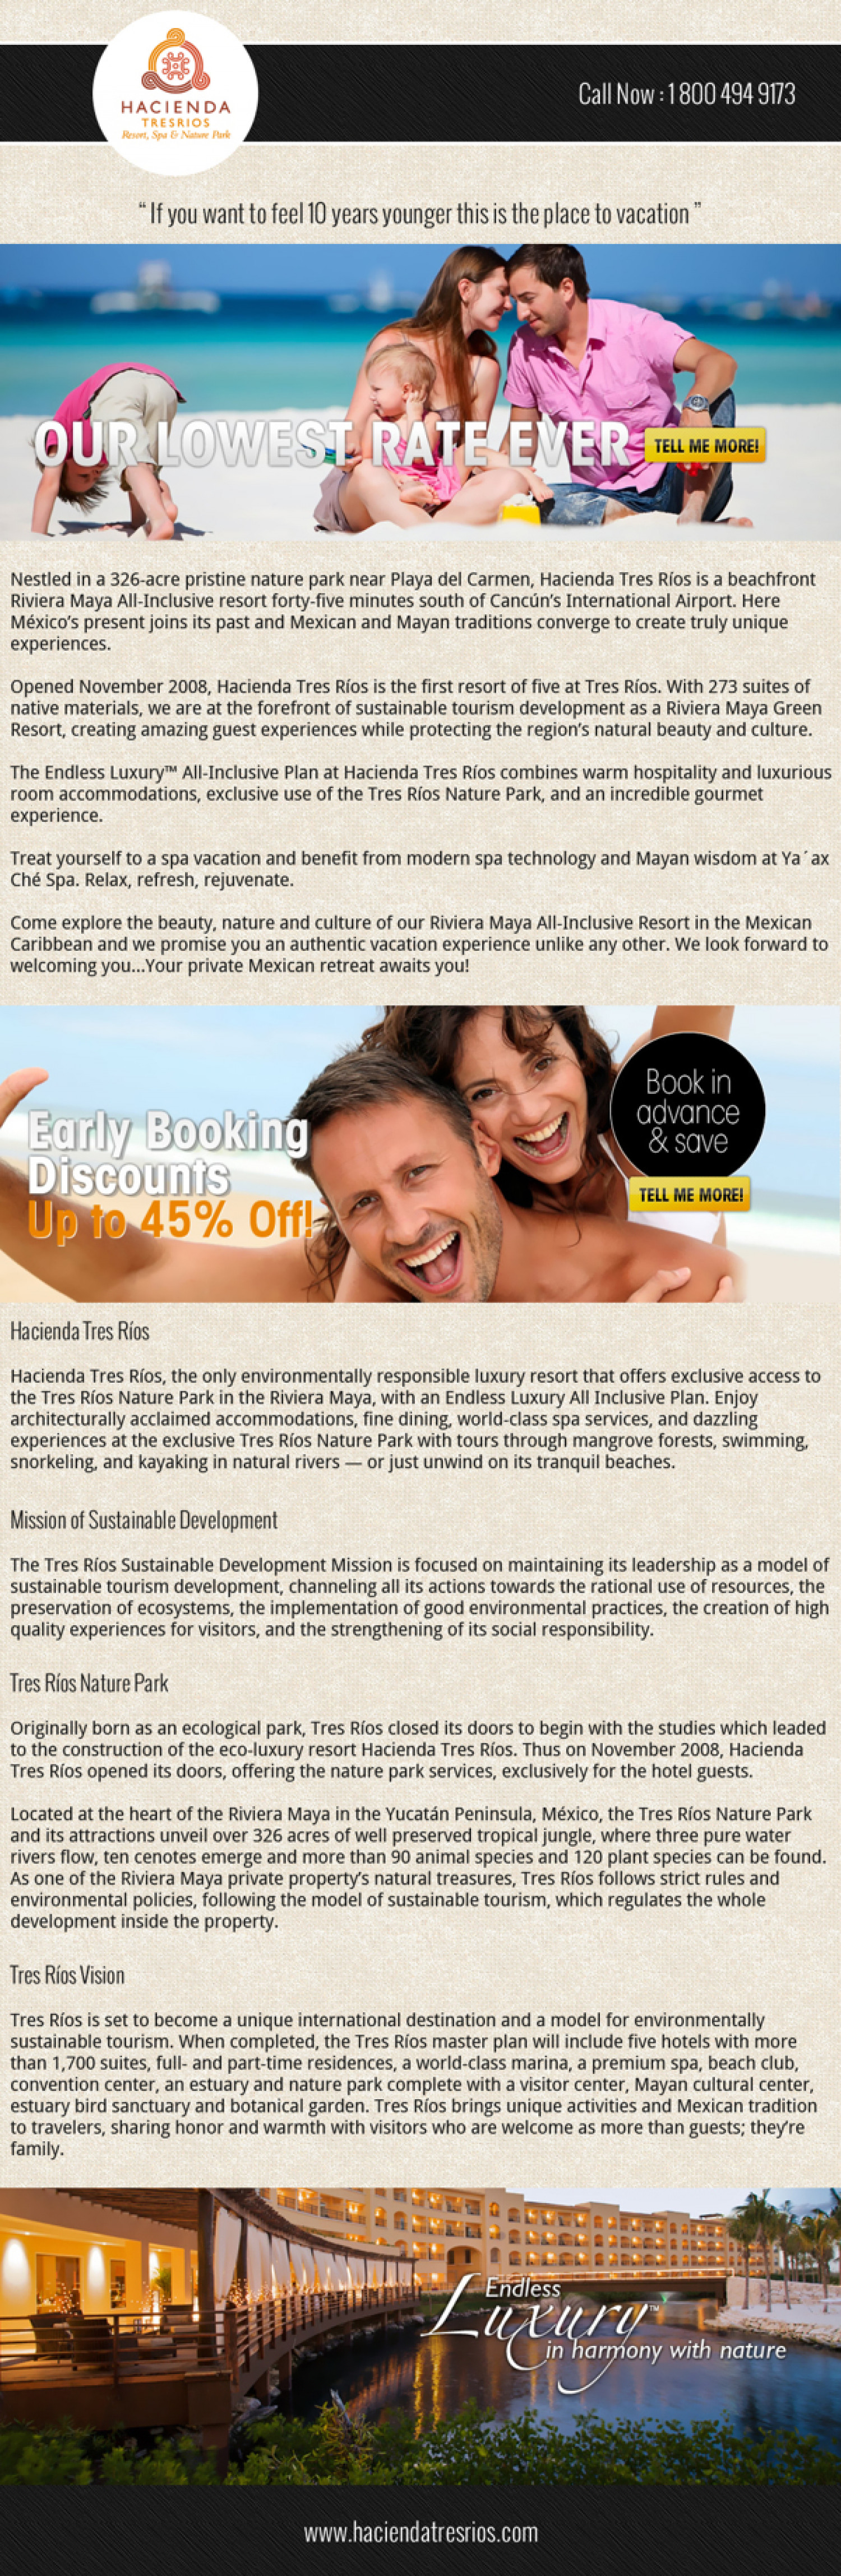 Wedding playa del carmen Infographic